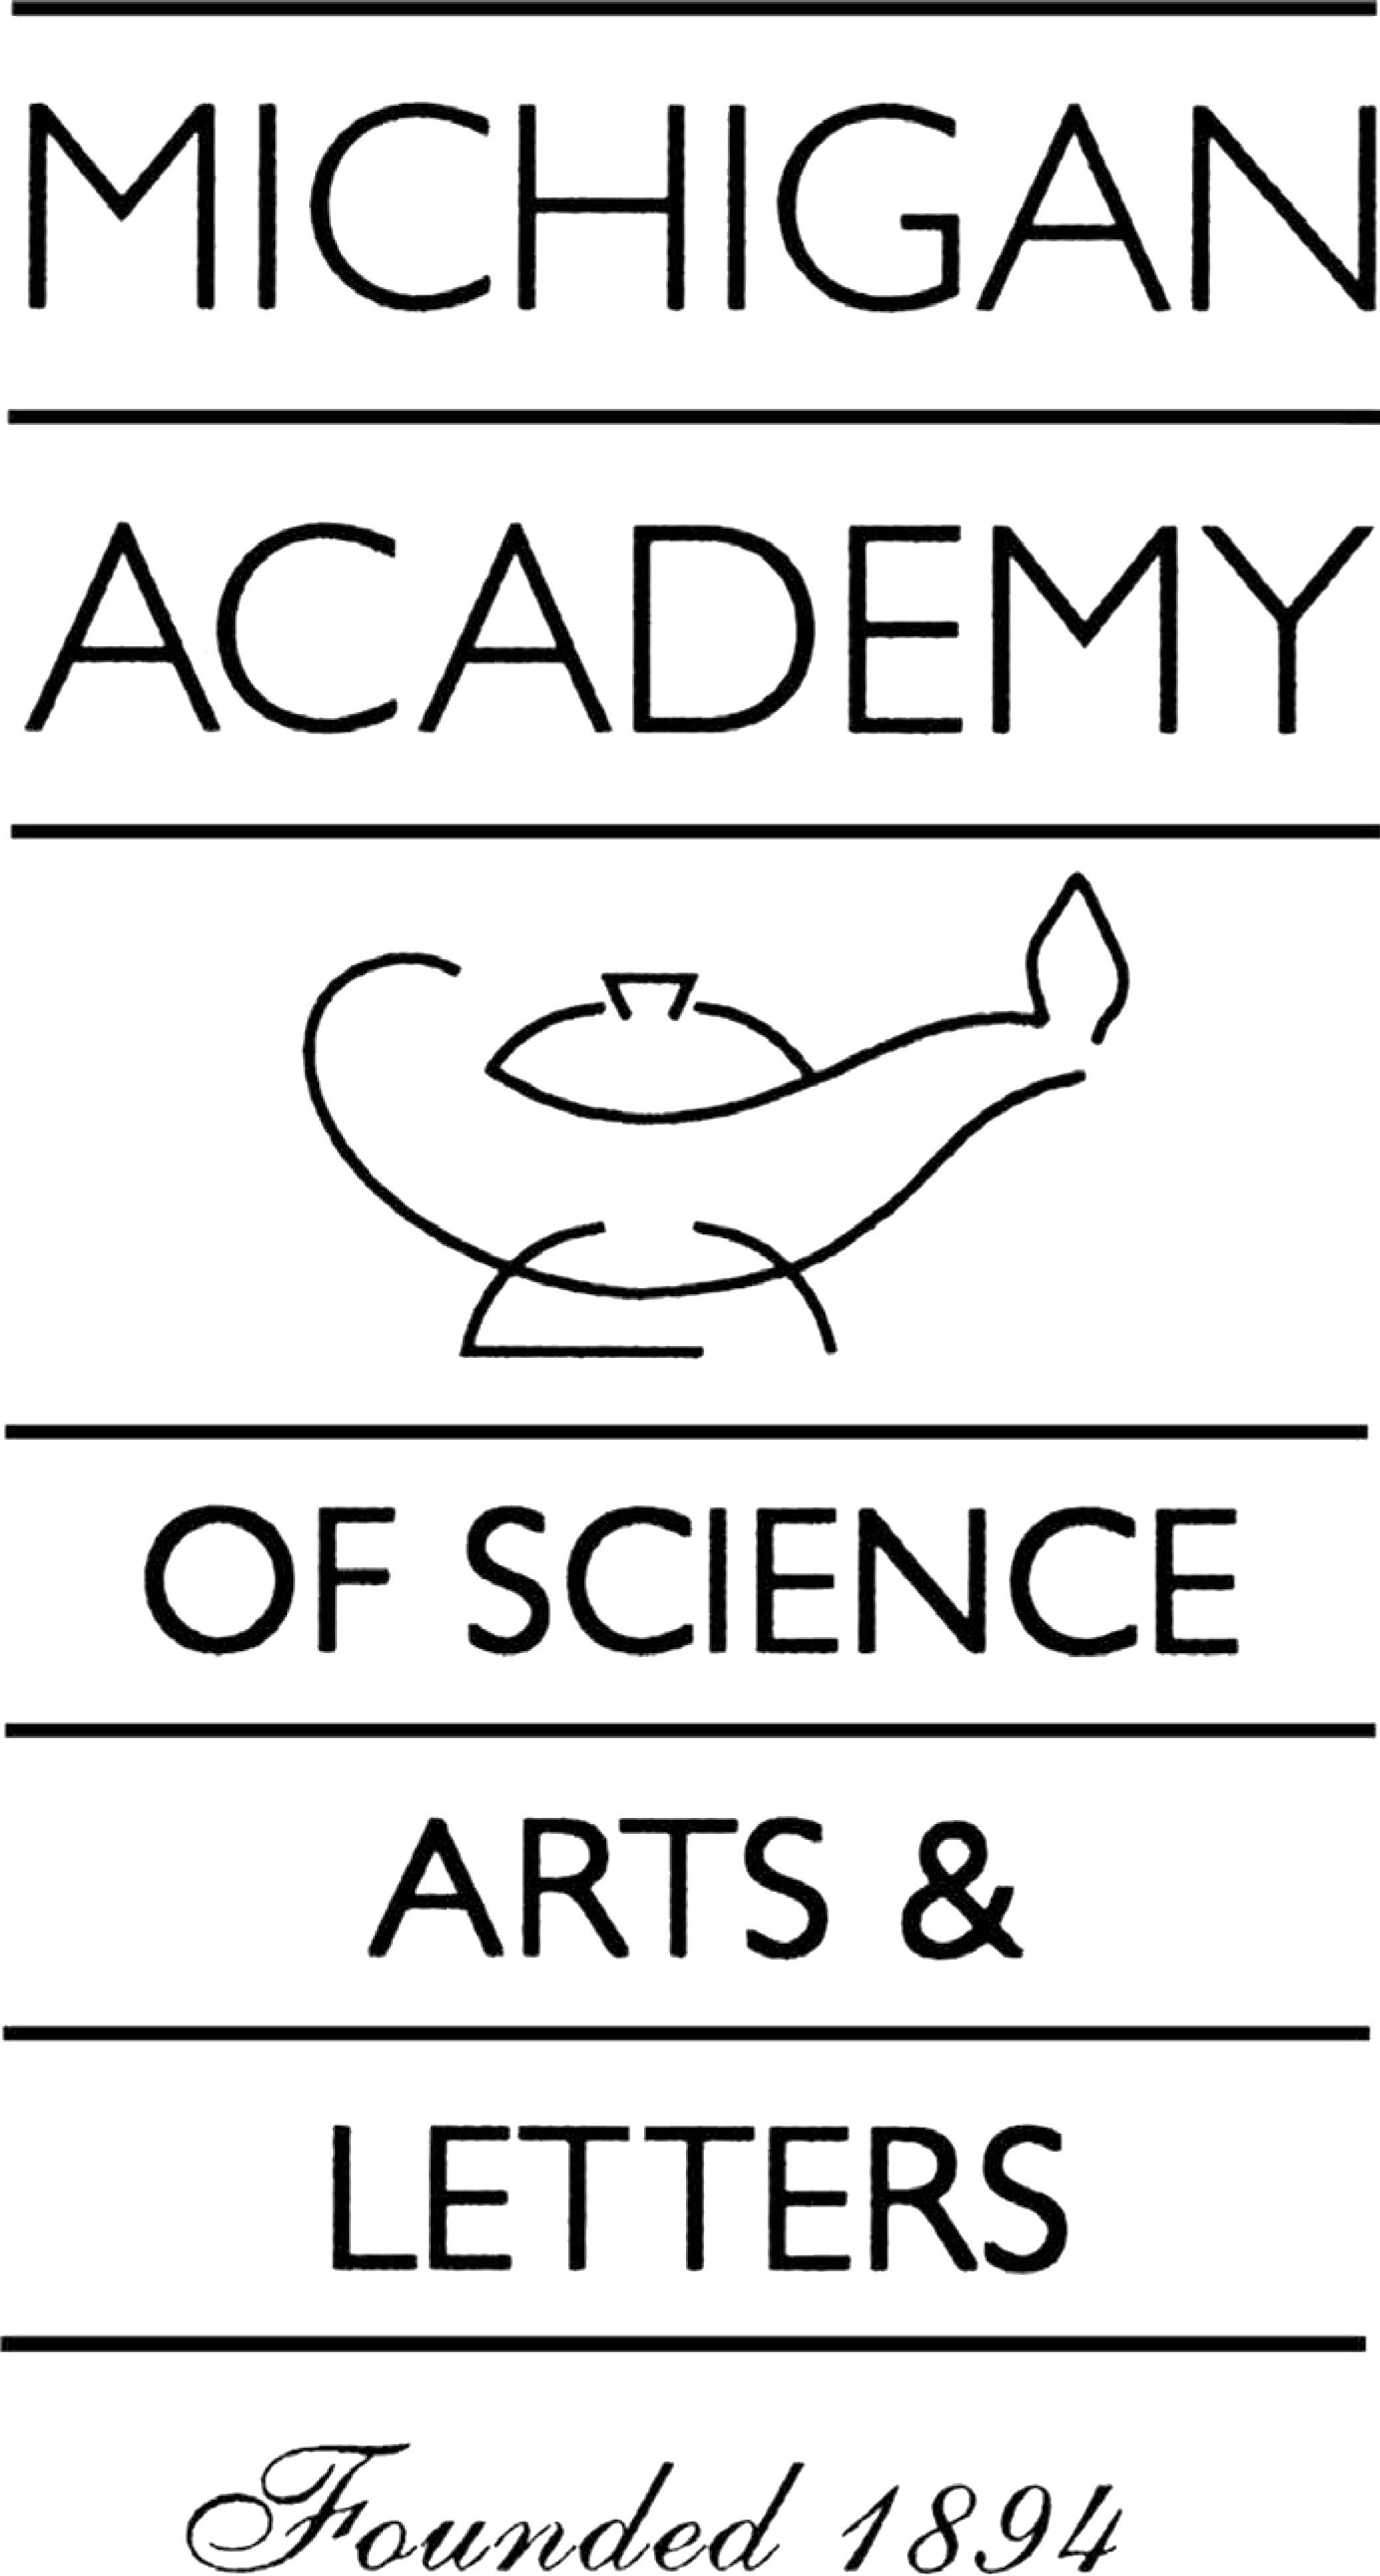 Michigan Academy of Science, Arts & Letters